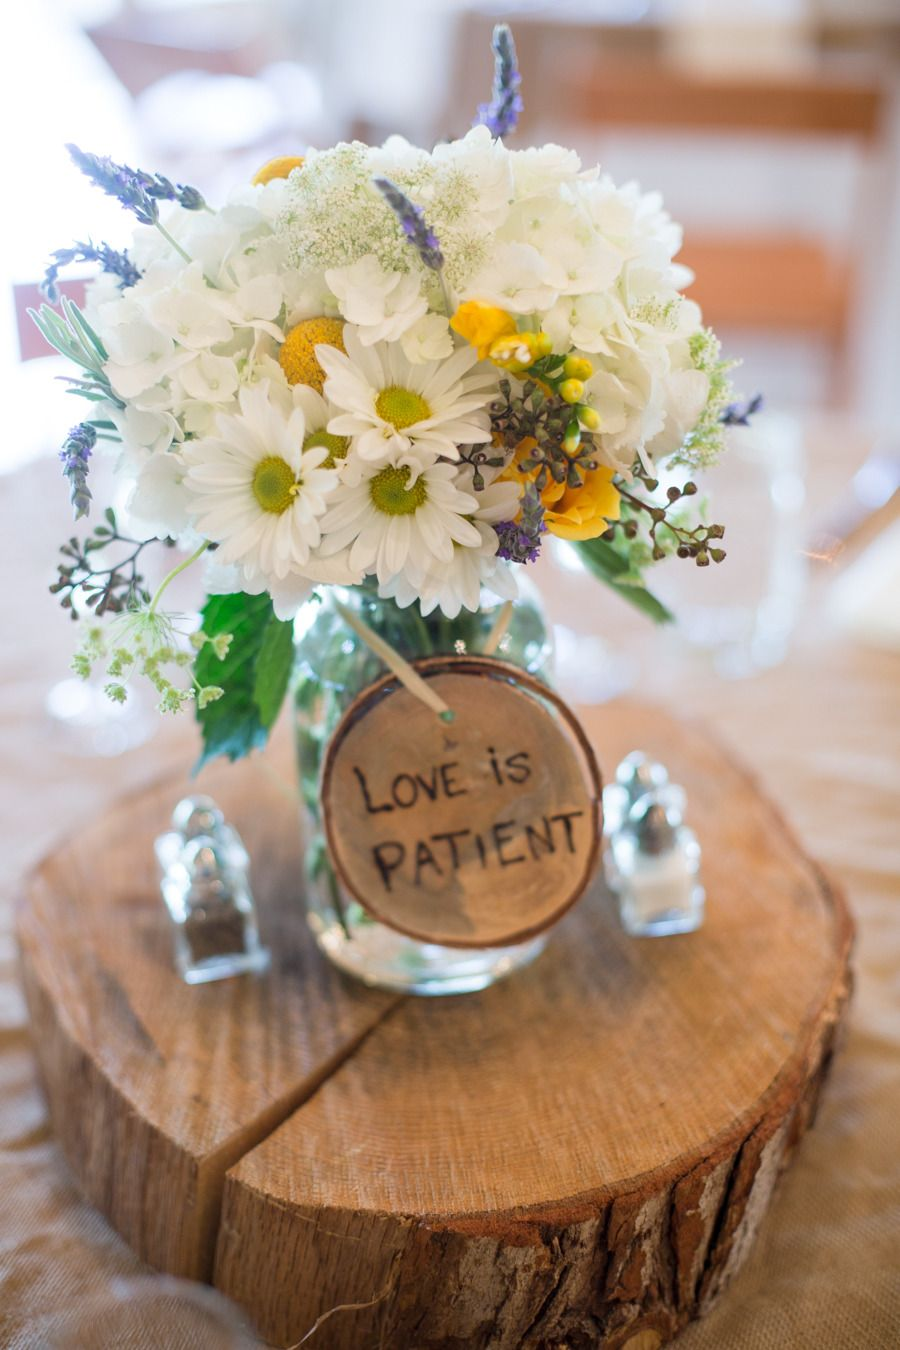 Intimate Rustic North Carolina Wedding At The Farm A Gathering Place Cheap Wedding Centerpieces Wood Slab Centerpiece Rustic Wedding Centerpieces